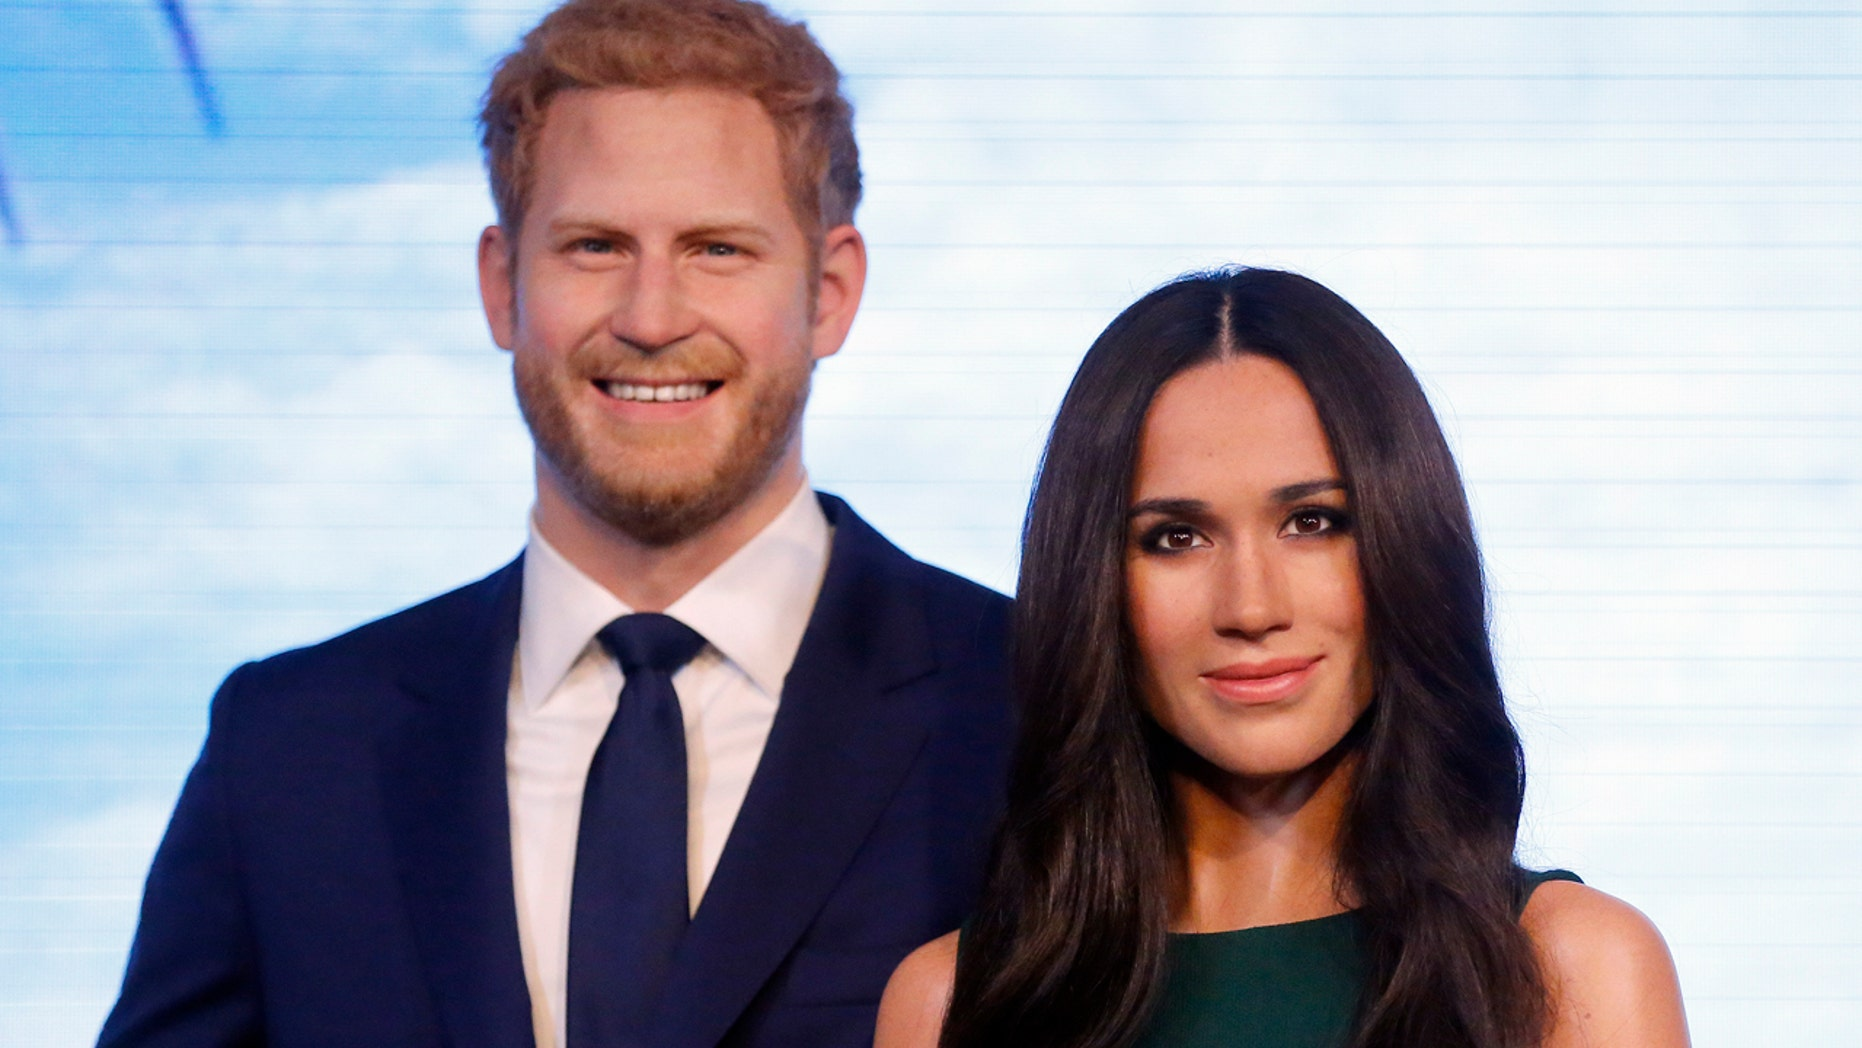 Britain's Prince Harry and his fiancee Meghan Markle are on display as wax figures at Madame Tussauds in London, Wednesday, May 9, 2018. As the world eyes are on the upcoming royal wedding, Madame Tussauds London unveils Meghan Markle's figure, standing alongside a re-styled figure of her groom, Prince Harry. (AP Photo/Frank Augstein)